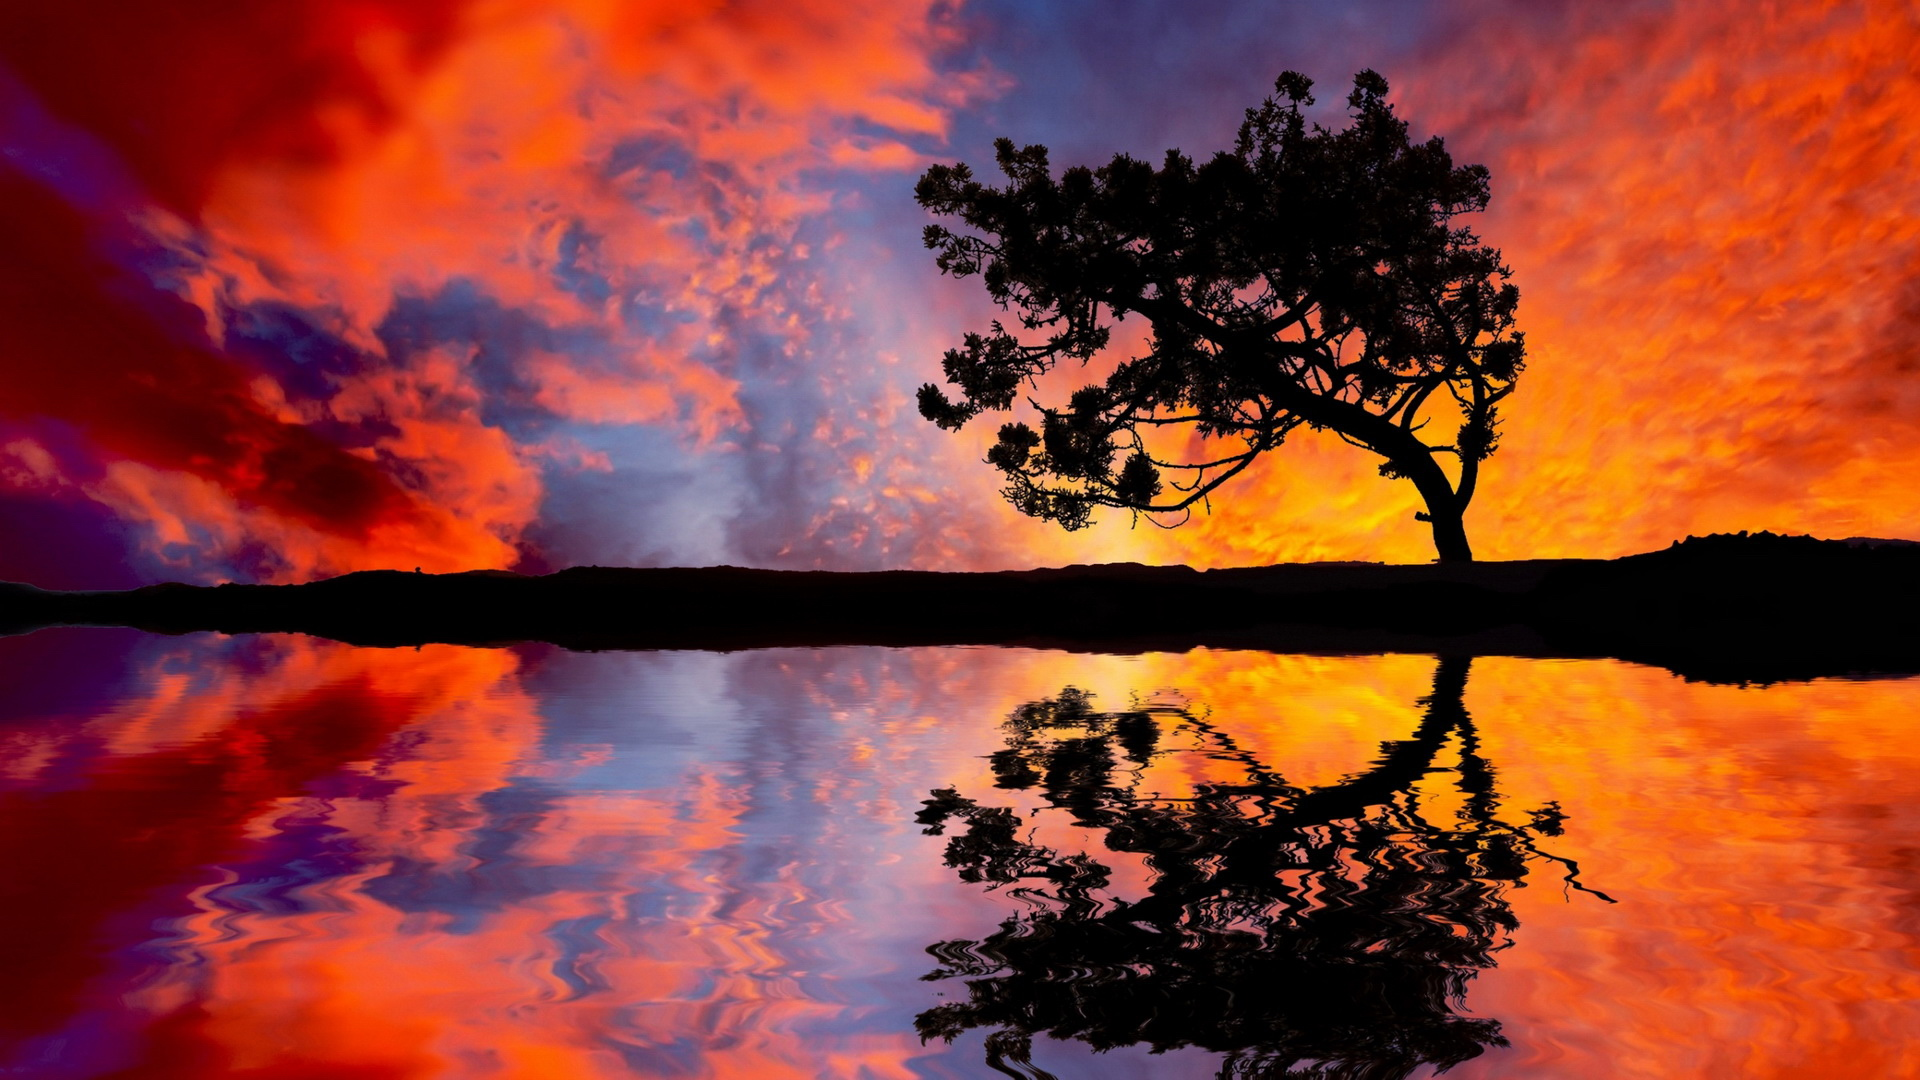 colorful sunset - wallpaper, high definition, high quality, widescreen